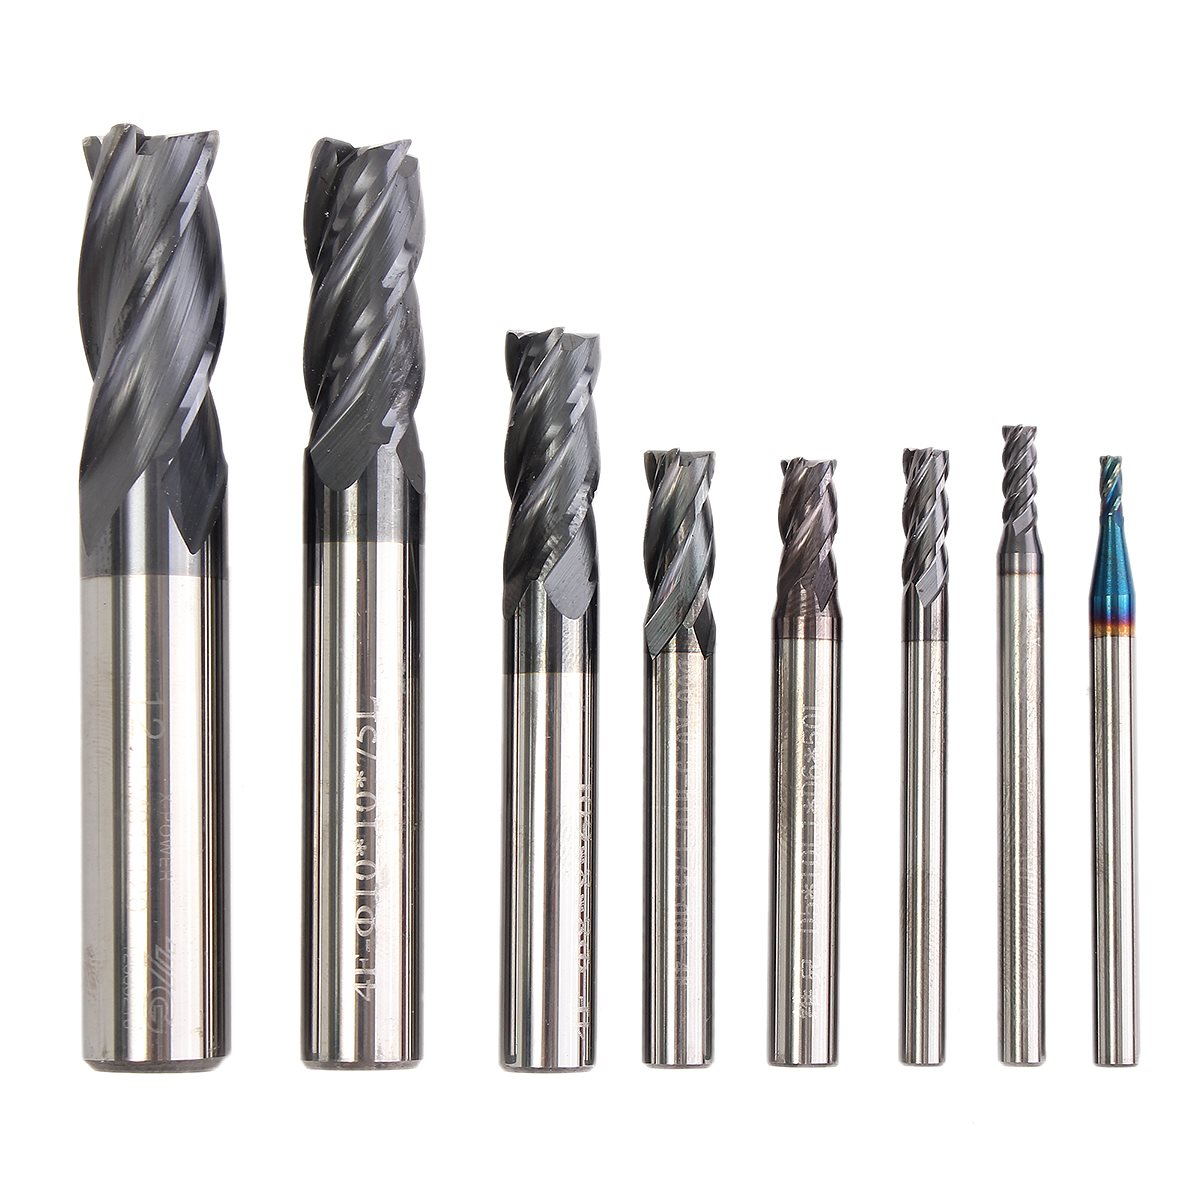 New 8Pcs Carbide End Mill 2-12mm 4 Blades Flute Tungsten Steel Milling Cutter CNC Tools Set Durable in use 1pcs high quality hss carbide end mill cnc tool diameter 12mm 4 blades flute mill cutter straight shank solid carbidet drill bit